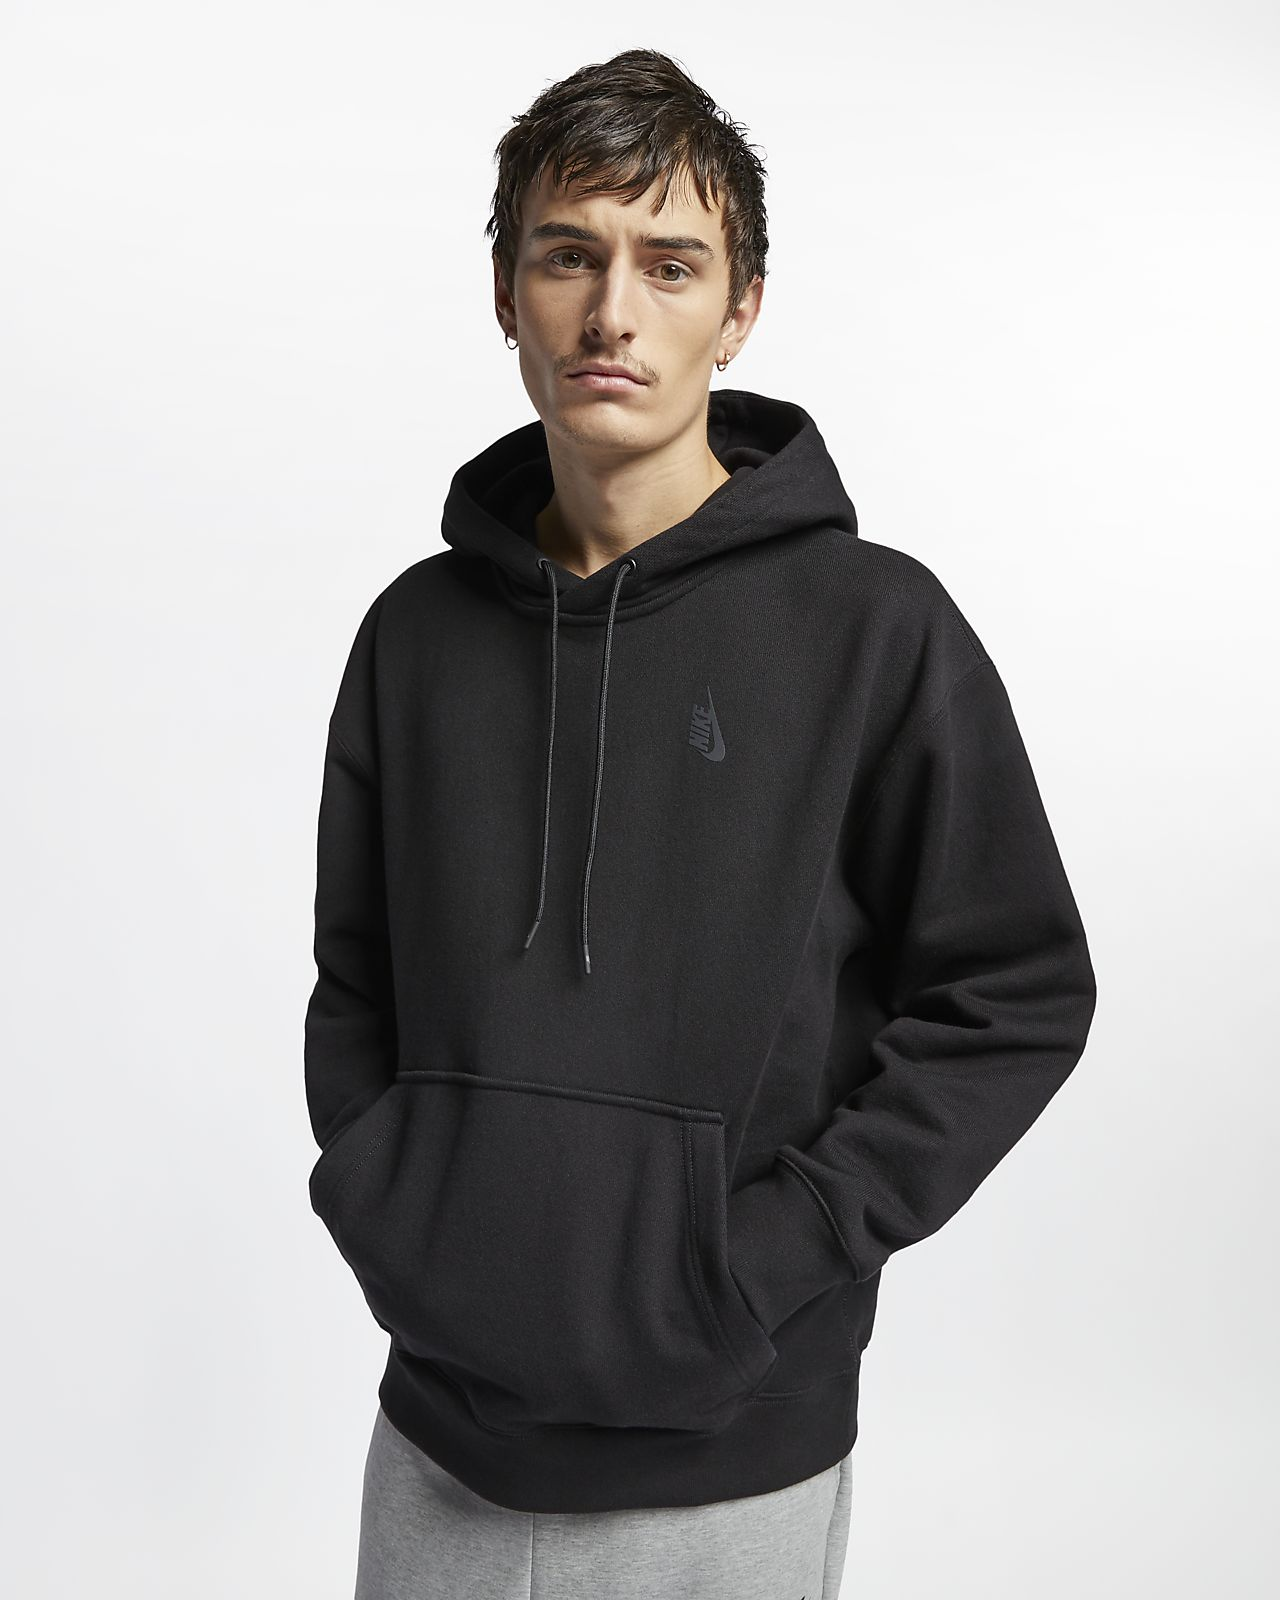 Sweat à capuche en tissu Fleece NikeLab Collection pour Homme